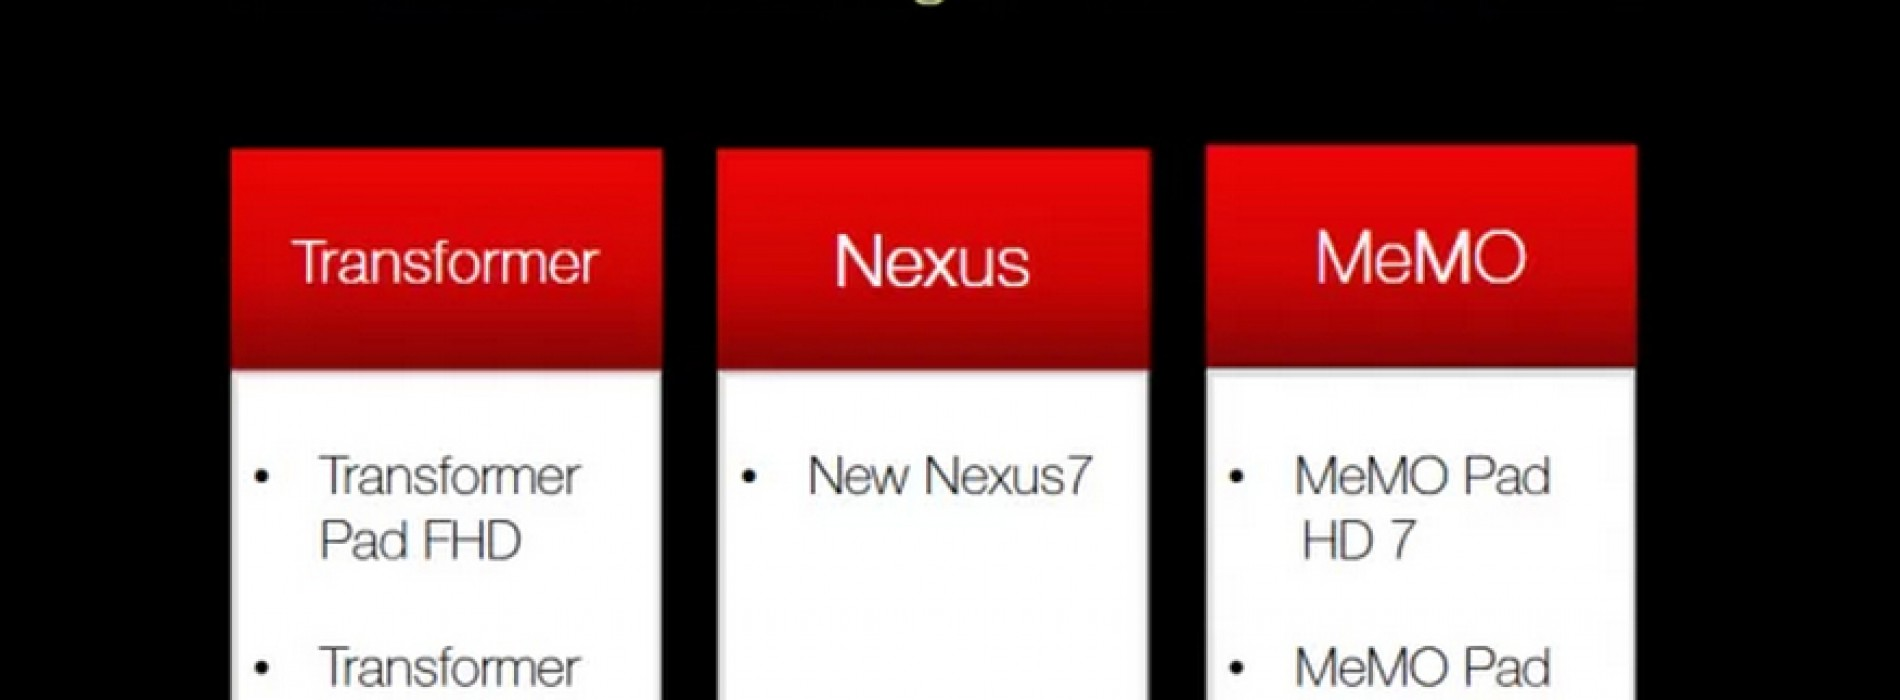 ASUS Android roadmap leaked, with Nexus 10 noticeably missing